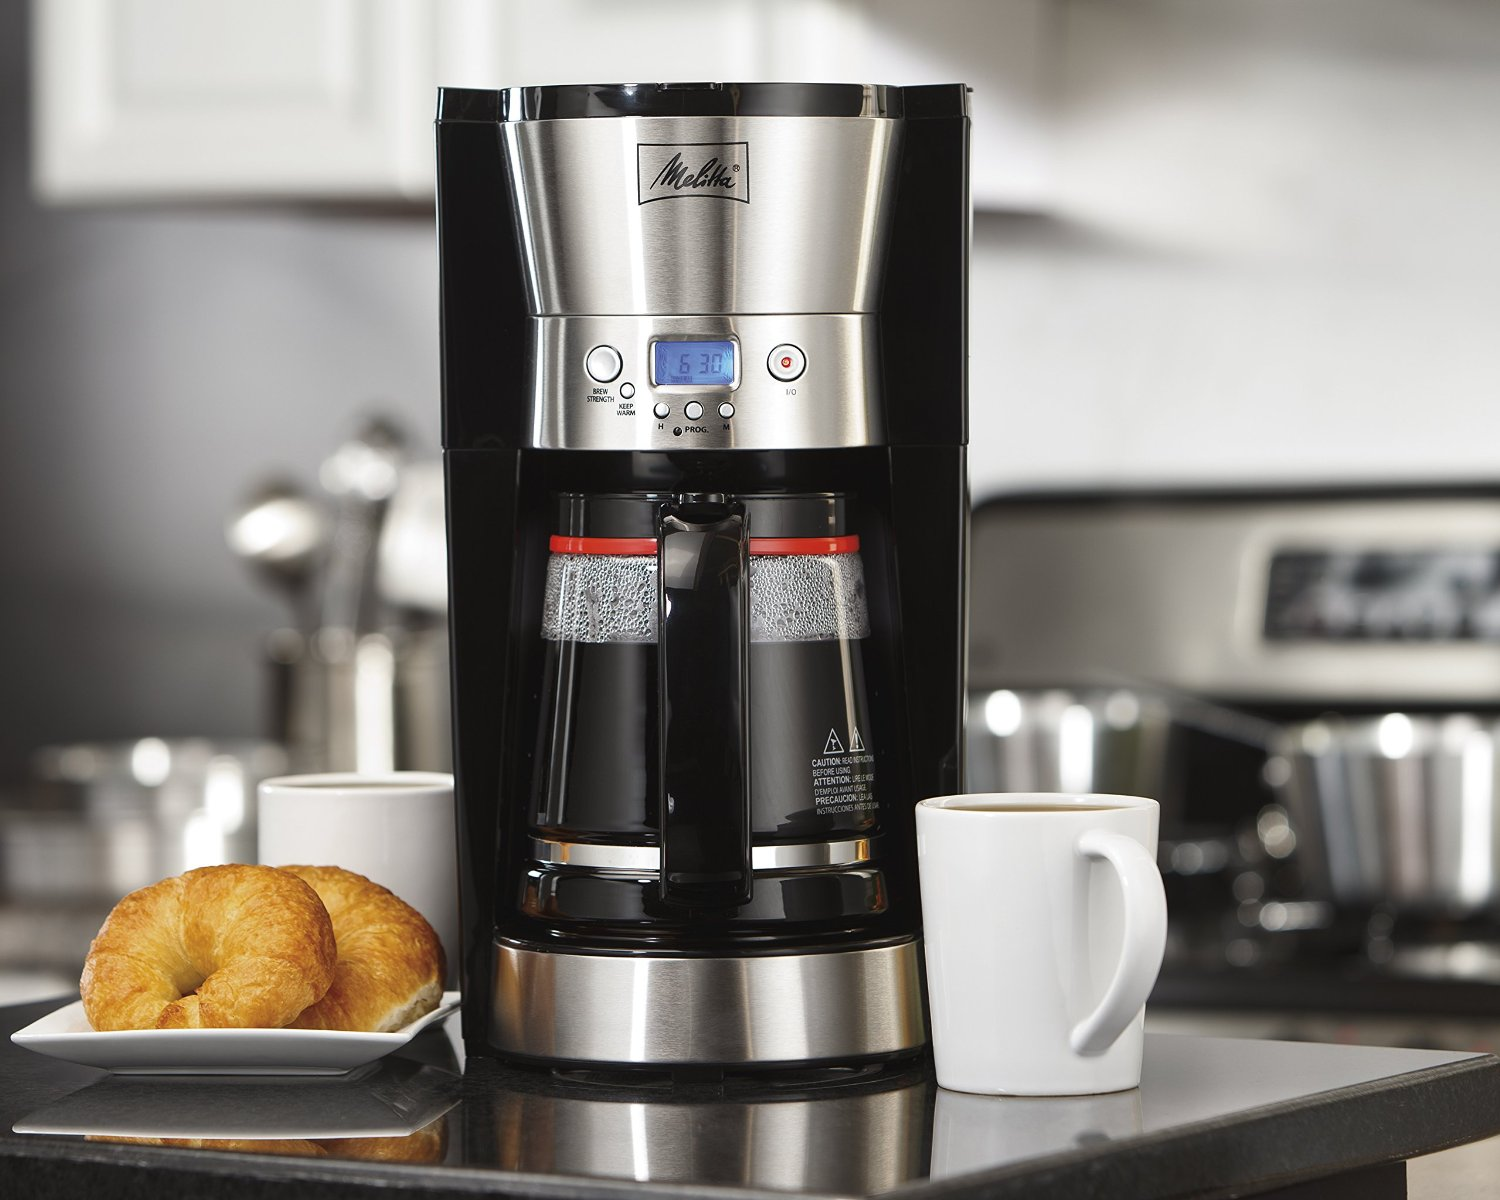 Melitta Coffee Maker Review Made By Hamilton Beach Doh